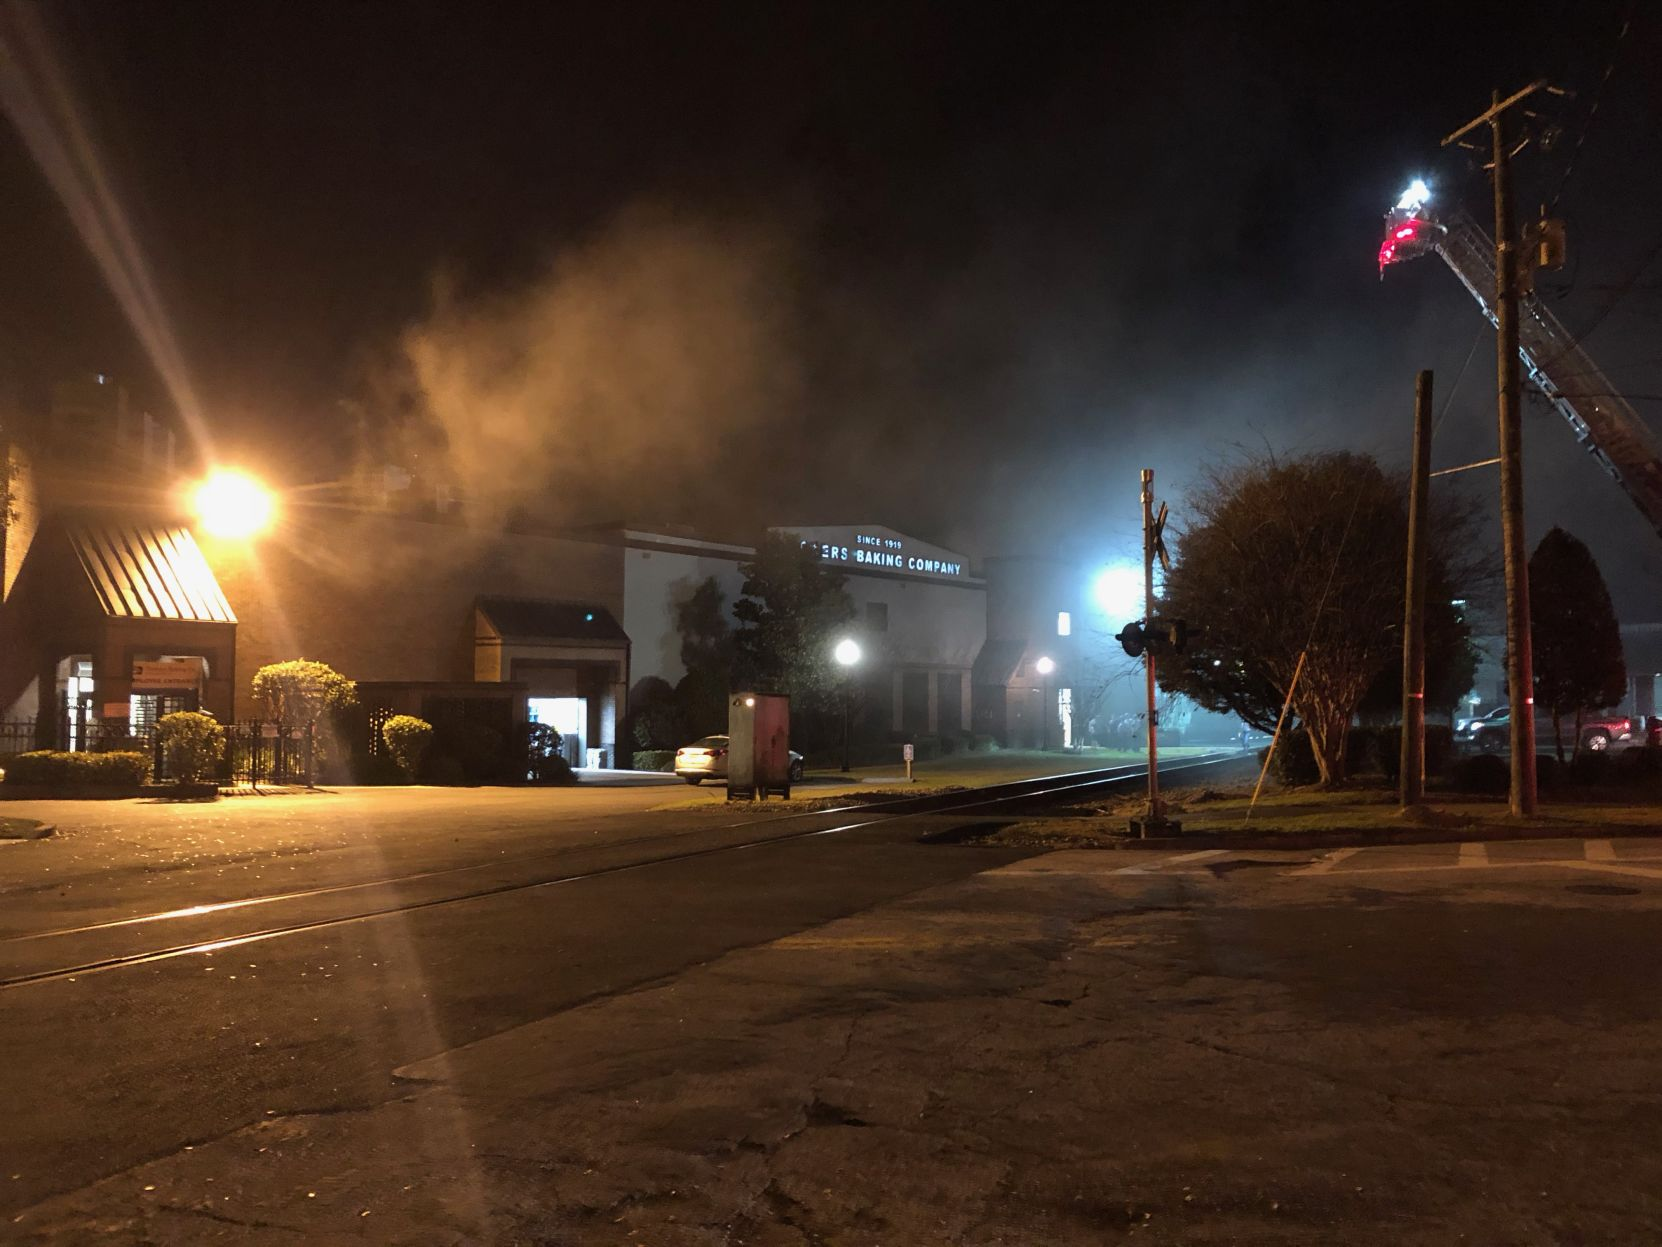 Fire crews responding to incident at Flowers Bakery